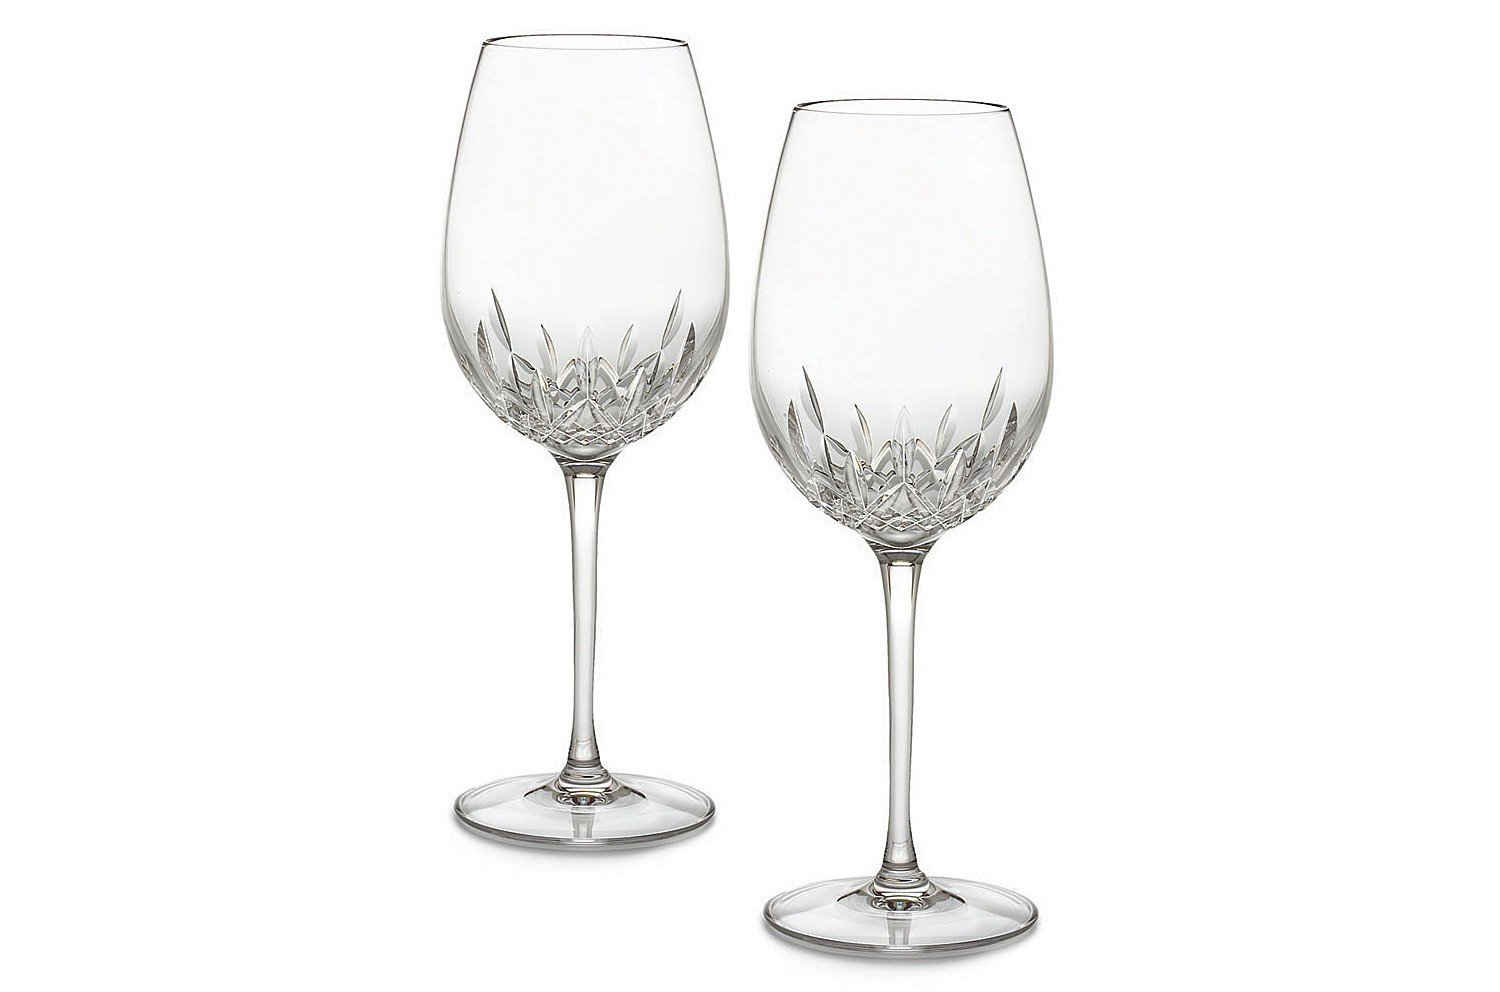 Waterford Crystal Lismore Essence Wine Goblet Set of 2